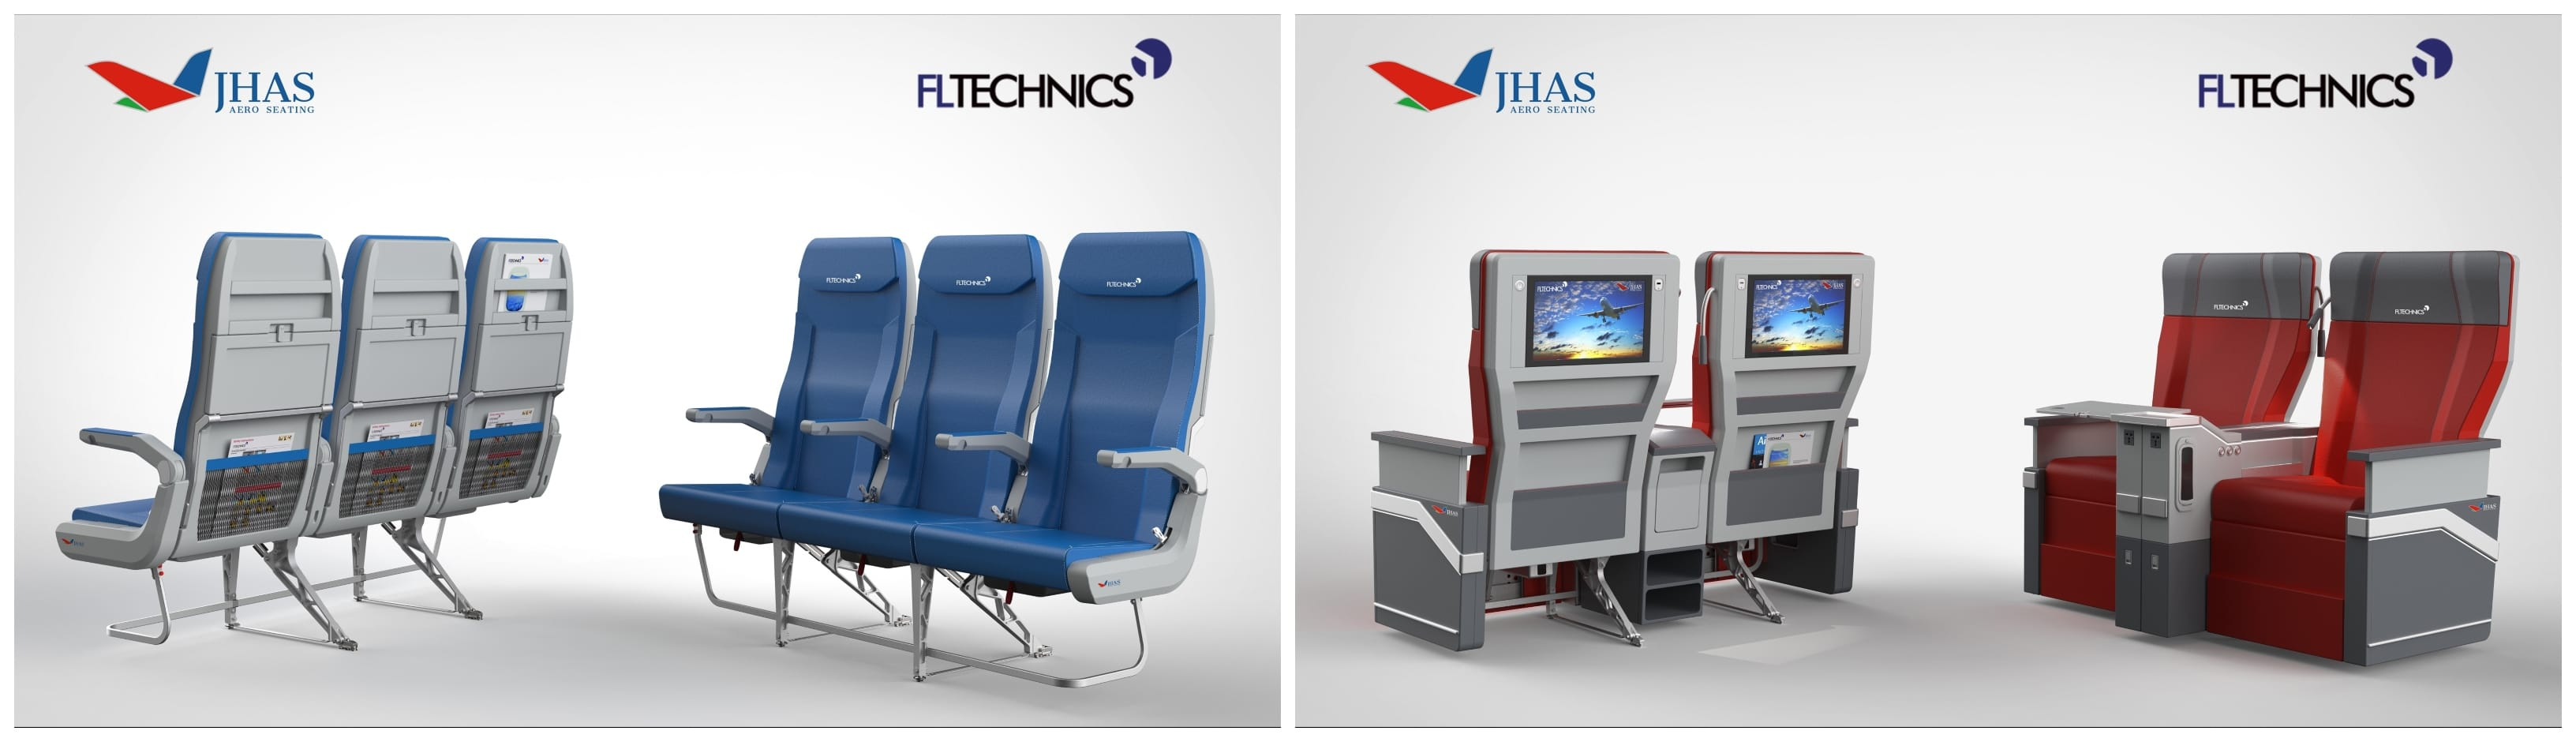 "FL Technics, a global provider of integrated aircraft maintenance, repair and overhaul services announces an exclusive partnership with JHAS, an Italian aircraft seating and interior company.   ""JHAS provides different, tailor-made solutions for aircraft interiors. This is not usual in aviation industry as we are looking for a breakthrough out of standardized seating environment. We are glad that JHAS chose us as their exclusive partners as this is a great opportunity for FL Technics also, giving us an upper-hand in our services,"" says Zilvinas Lapinskas, CEO at FL Technics.  Since the beginning of this cooperation, FL Technics will be an official representative of JHAS in Europe, Africa, Middle East, CIS and Russian regions, as well as Asia Pacific region. FL Technics will act as exclusive seller and promoter of economy, business and first class seats so to cover all the typology of products for aircraft cabin interiors classes.   ""We are very proud to be a partner of one of the most energetic players in MRO market. It's a great opportunity to introduce unique products for each client and to show our capacity through expertise in the market where every need of our customers will be reached, thanks to the synergy with FL Technics,"" says Mario Schisa, CEO at JHAS.   FL Technics continued their global expansion and started implementing its strategic goals by amplifying their operations in Asia Pacific region and China. Just recently, FL Technics created a joint-venture in China, opened a warehouse in Singapore and expanded their MRO activities in Indonesia by receiving an FAA Part-145 certificate for the subsidiary FL Technics Indonesia. The deal with JHAS allows FL Technics to suggest tailor-made solutions for present and future clients in Asia Pacific region and China.  FL Technics is a global provider of aircraft maintenance, repair and overhaul (MRO) services. Company specializes in base & line maintenance, spare parts & component support, engine, APU & LG management, full aircraft engineering, technical training. FL Technics is an EASA Part-145, Part-M, Part-147, Part-21 and FAA 145 (Indonesia) certified company. FL Technics is a member of the Avia Solutions Group family.  JHAS is a design and production company of seats and interiors in aviation. The company's headquarters with Design, Style, Certification and R&D departments are located in Italy. Most advanced instruments for analysis and simulations (FEM, 3D virtual simulator) are available for the customers. In China the company has a prototype & production assembly site of 90.000 sq.m. JHAS territorial presence in the three sites guarantees support and assistance to customers and OEM all over the world. JHAS is a part of Jiangsu HengSheng Aviation Seats Group."